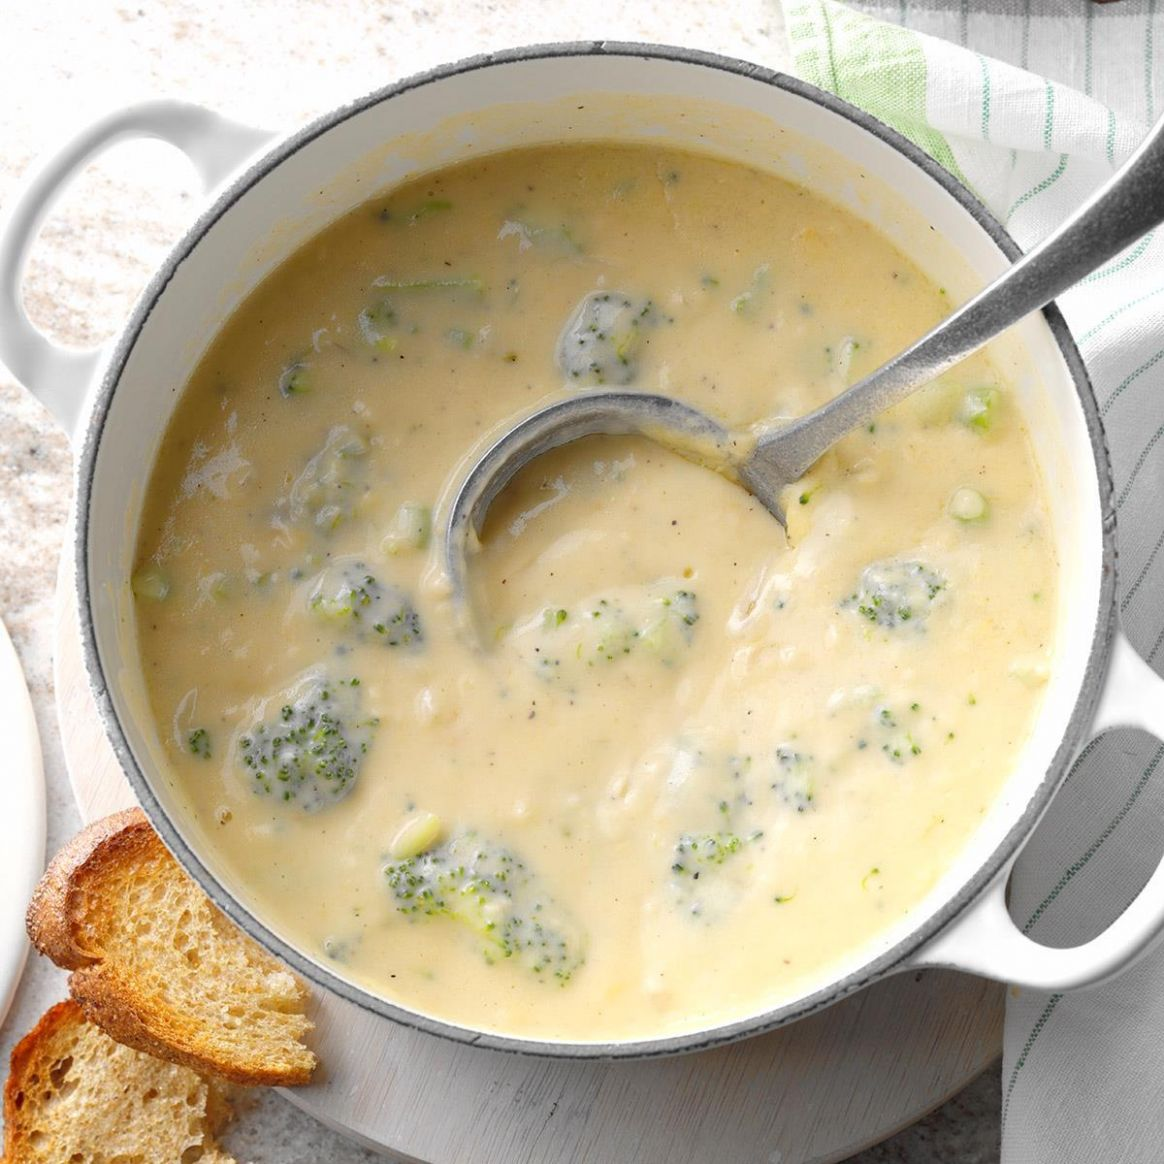 Broccoli Cheddar Soup - Broccoli Cheddar Soup Recipes